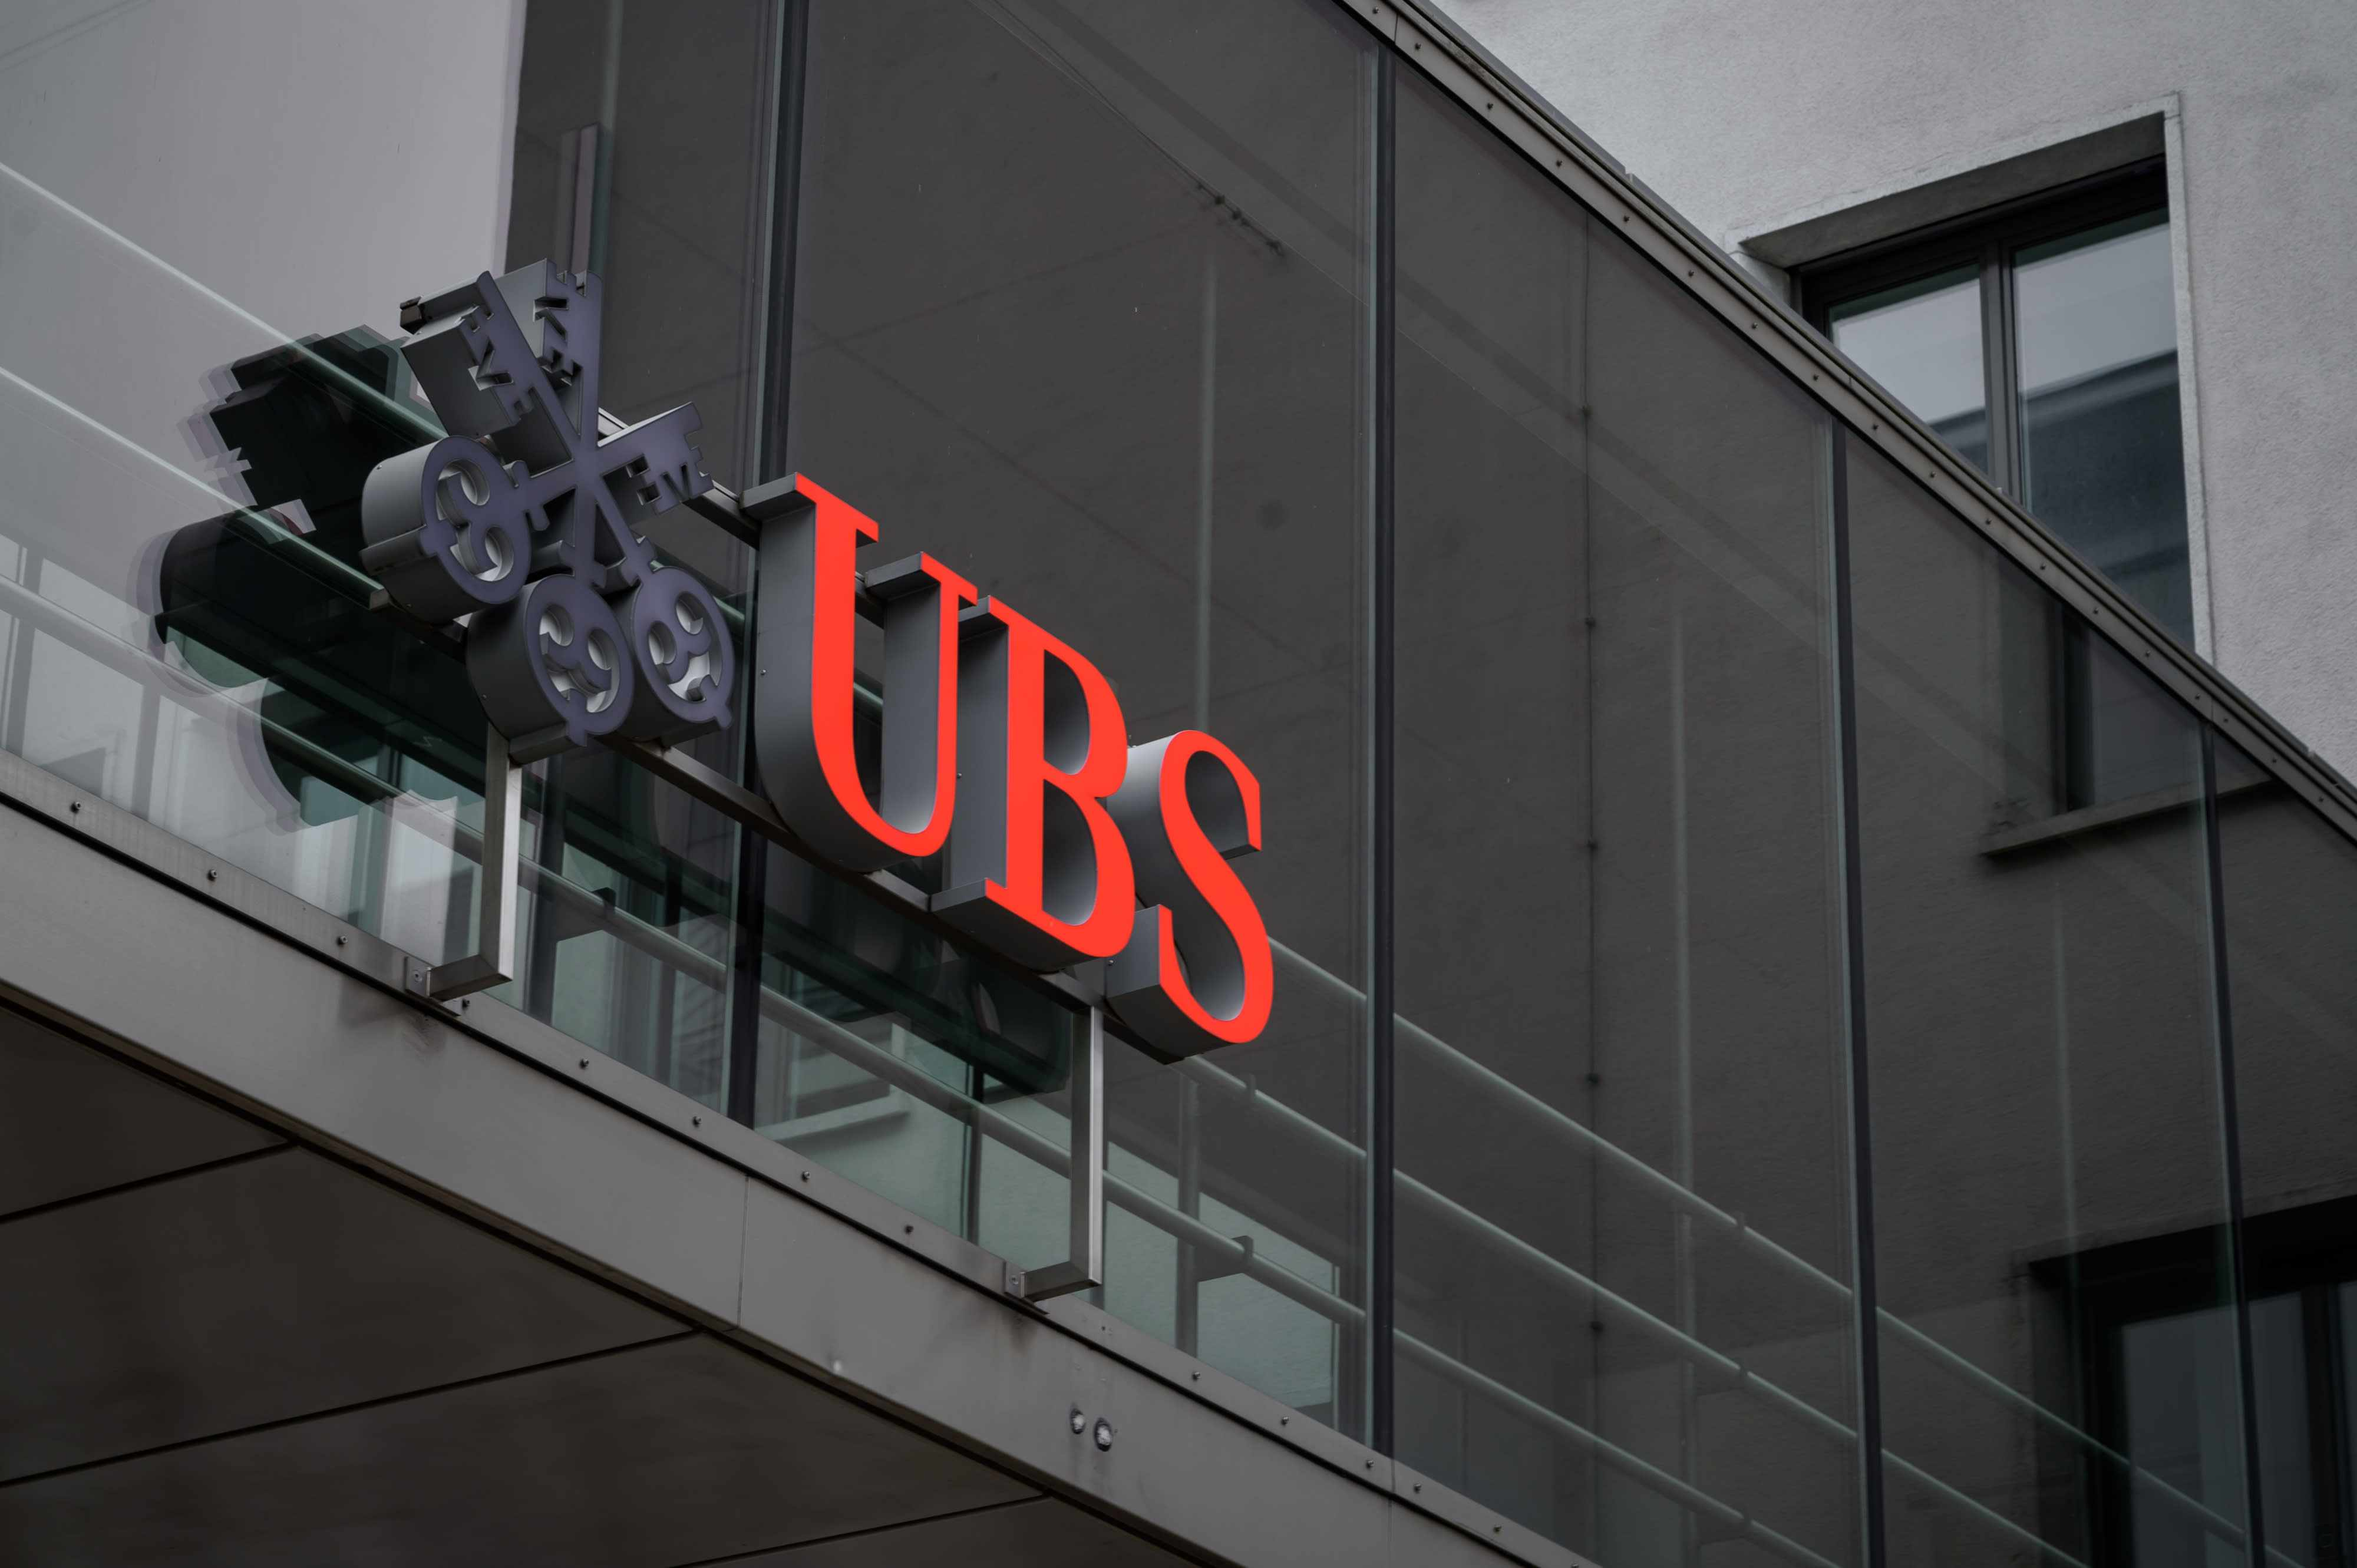 archegos ubs stuns investors hit